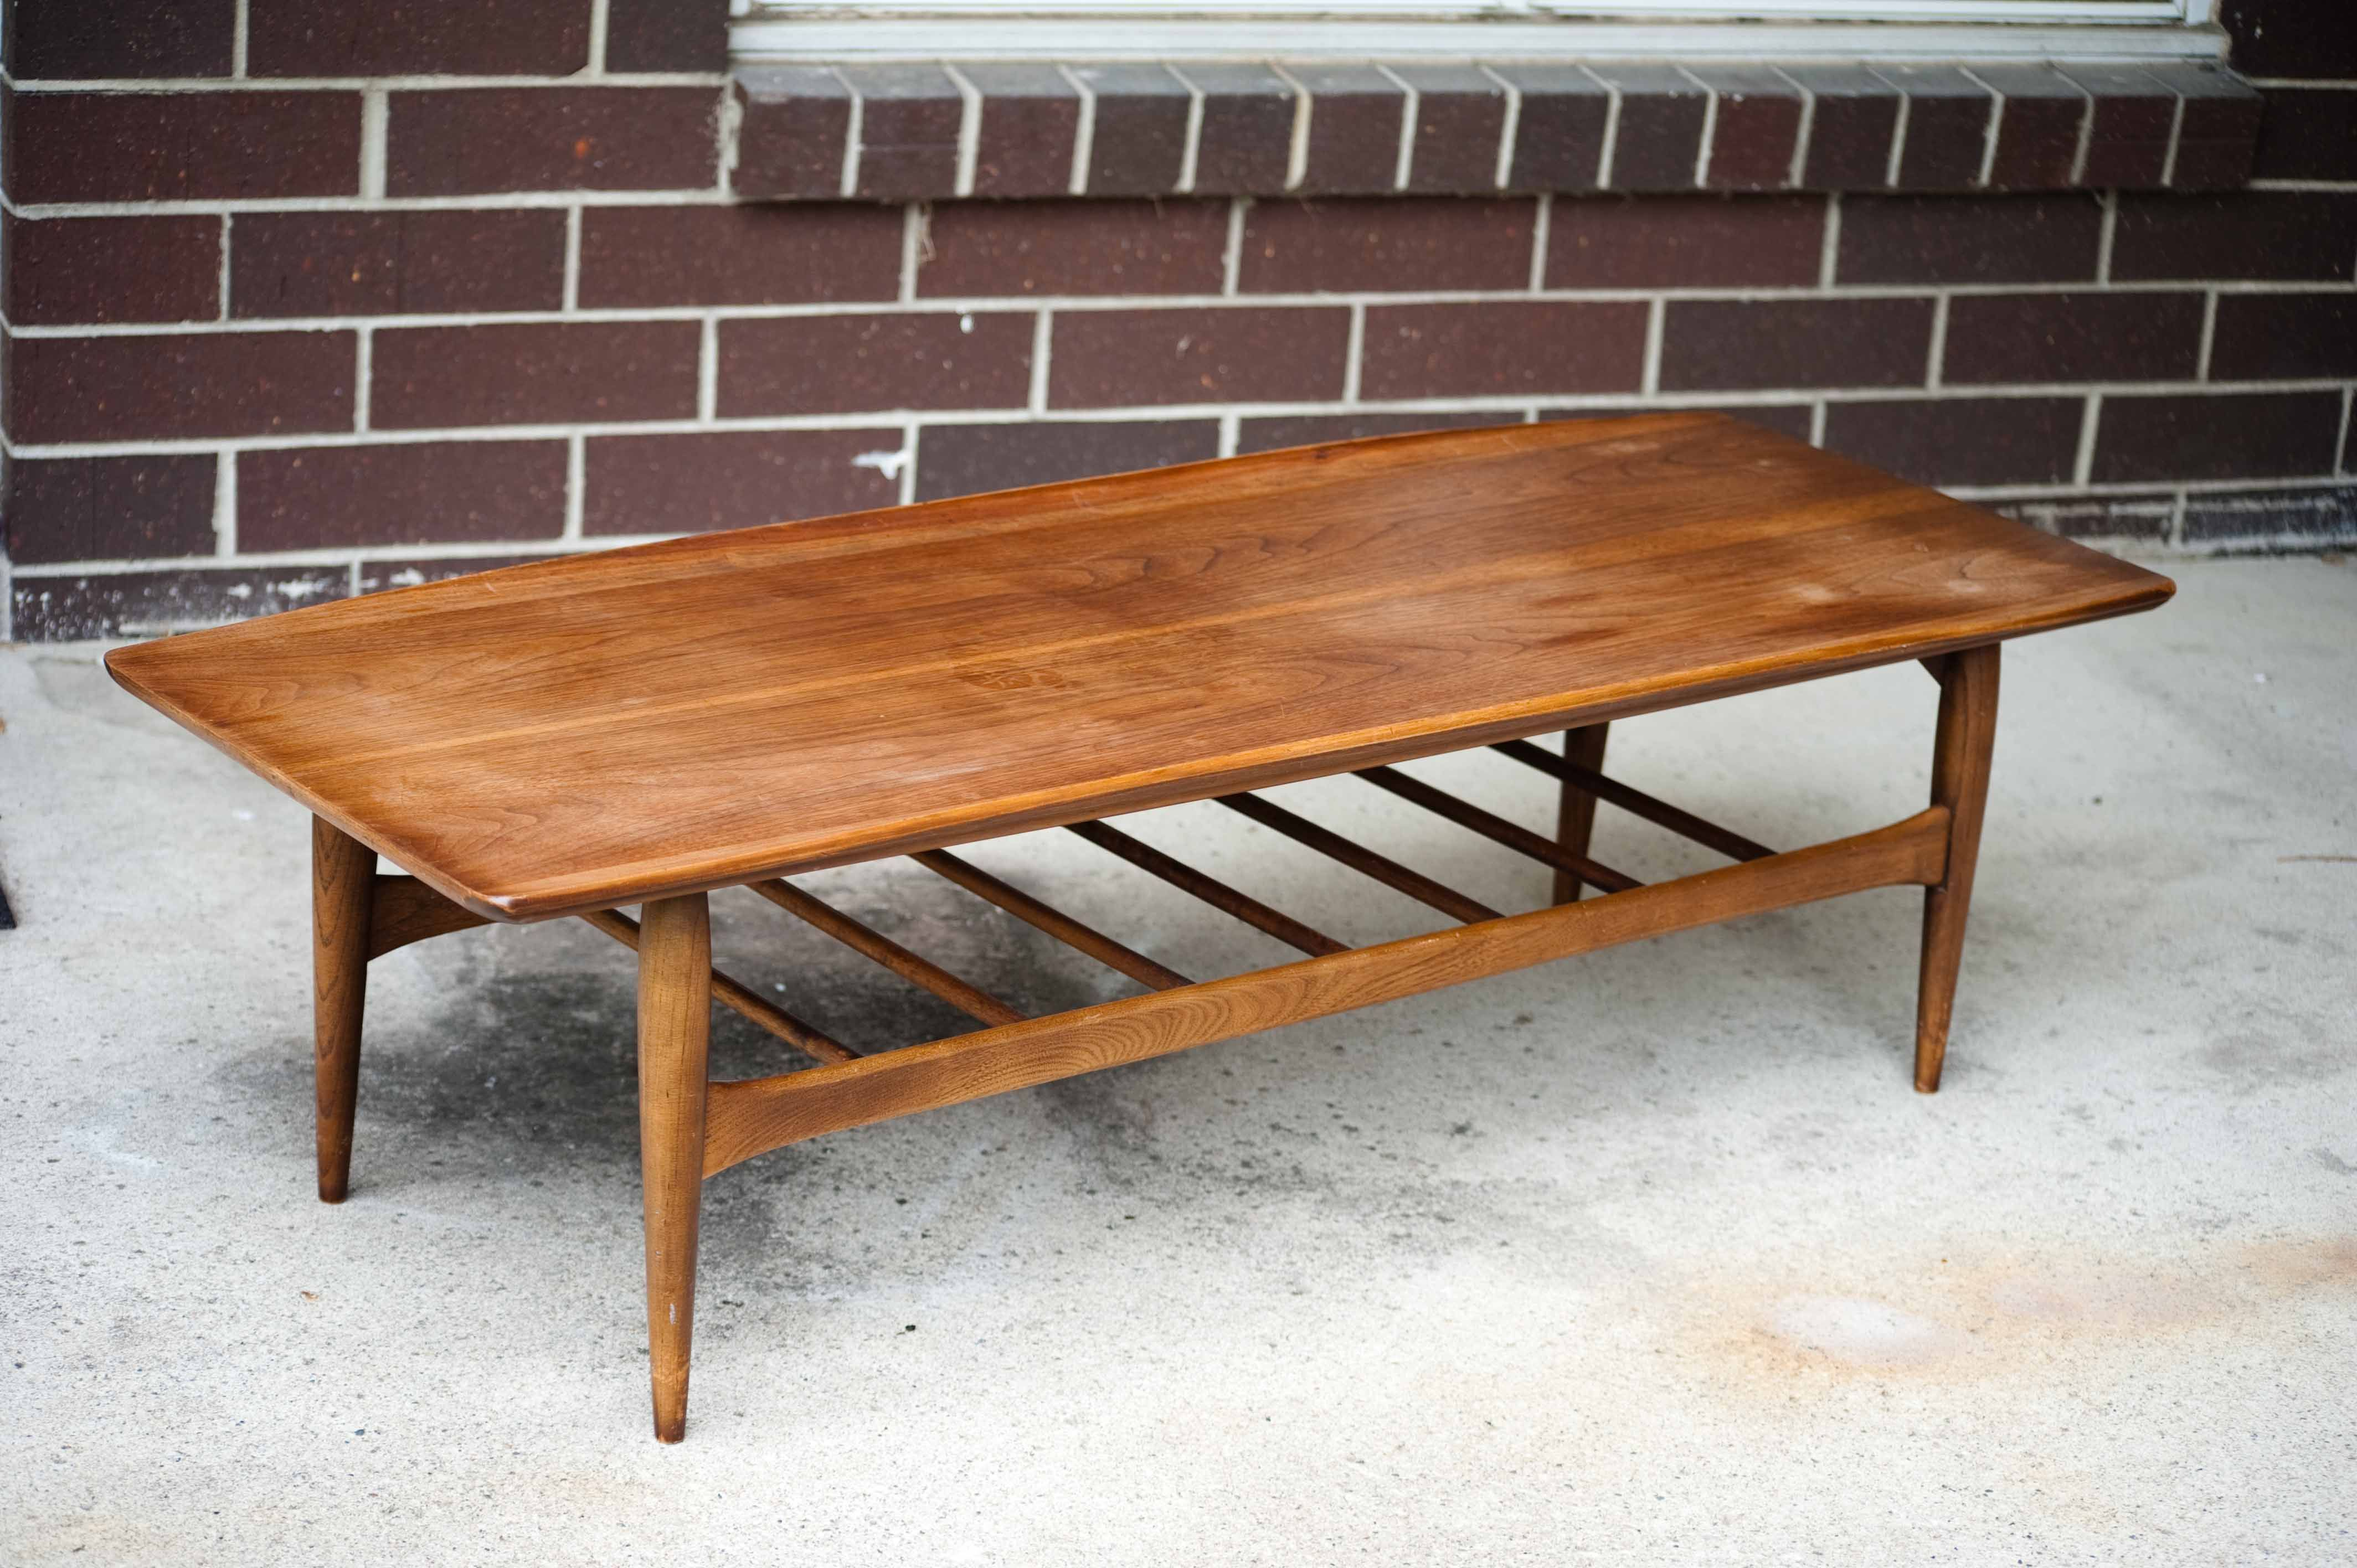 Pin By Sarah Stein Greenberg On Coffee Table Inspiration Coffee Table Danish Modern Coffee Table Mid Century Modern Coffee Table [ 2832 x 4256 Pixel ]